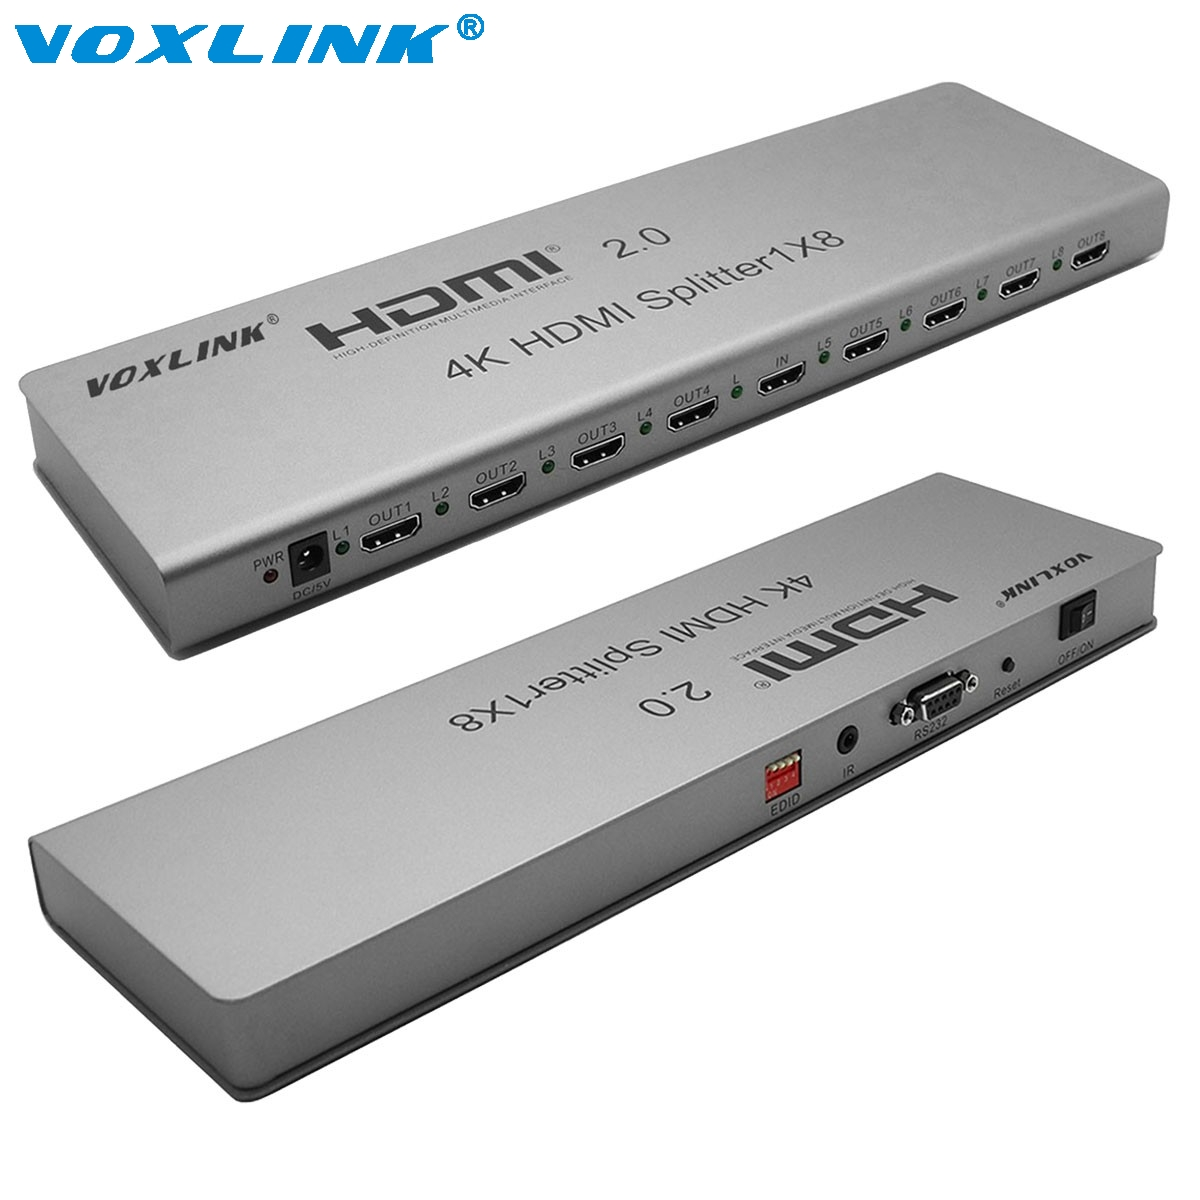 VOXLINK 4K 8Port HDMI 2.0 splitter 1 In 8 Out HDMI Switcher Splitter Support HDCP2.2,IR extension EDID mangement 3D For PS3 DVD